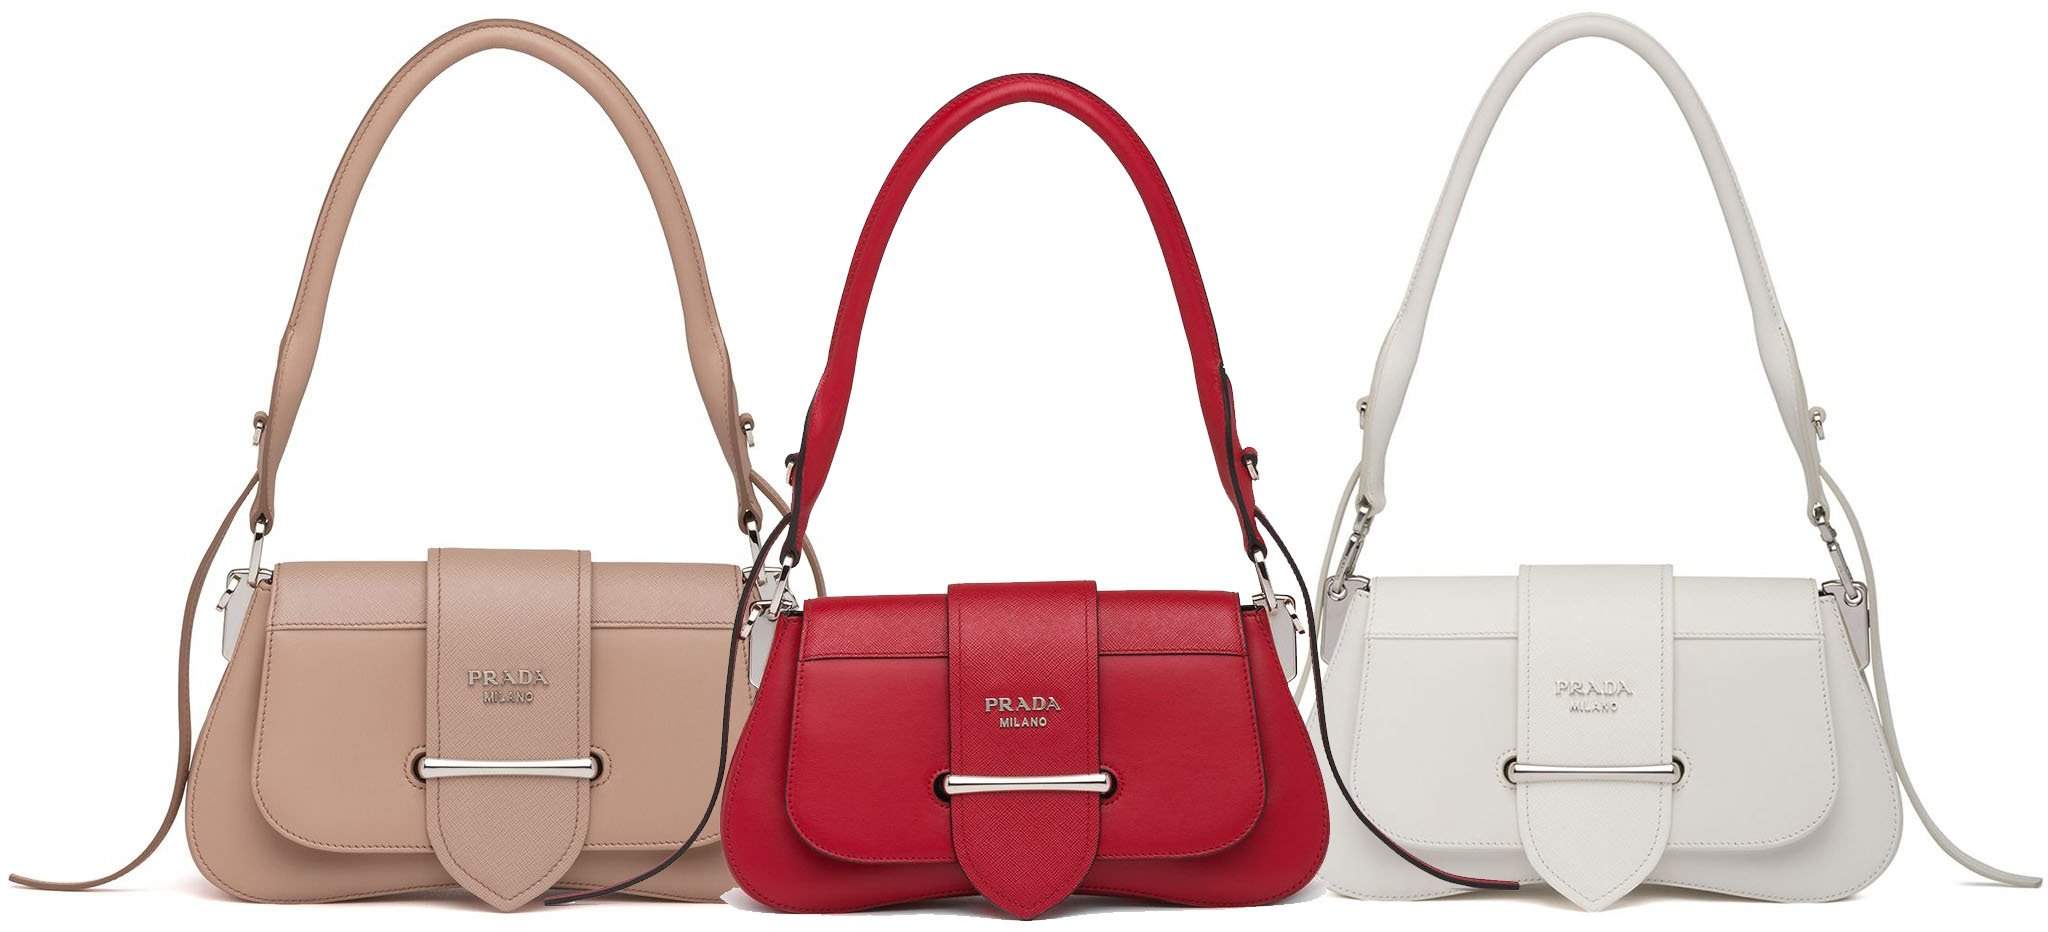 A sinuous line defines the saddle silhouette of the Prada Sidonie leather bag